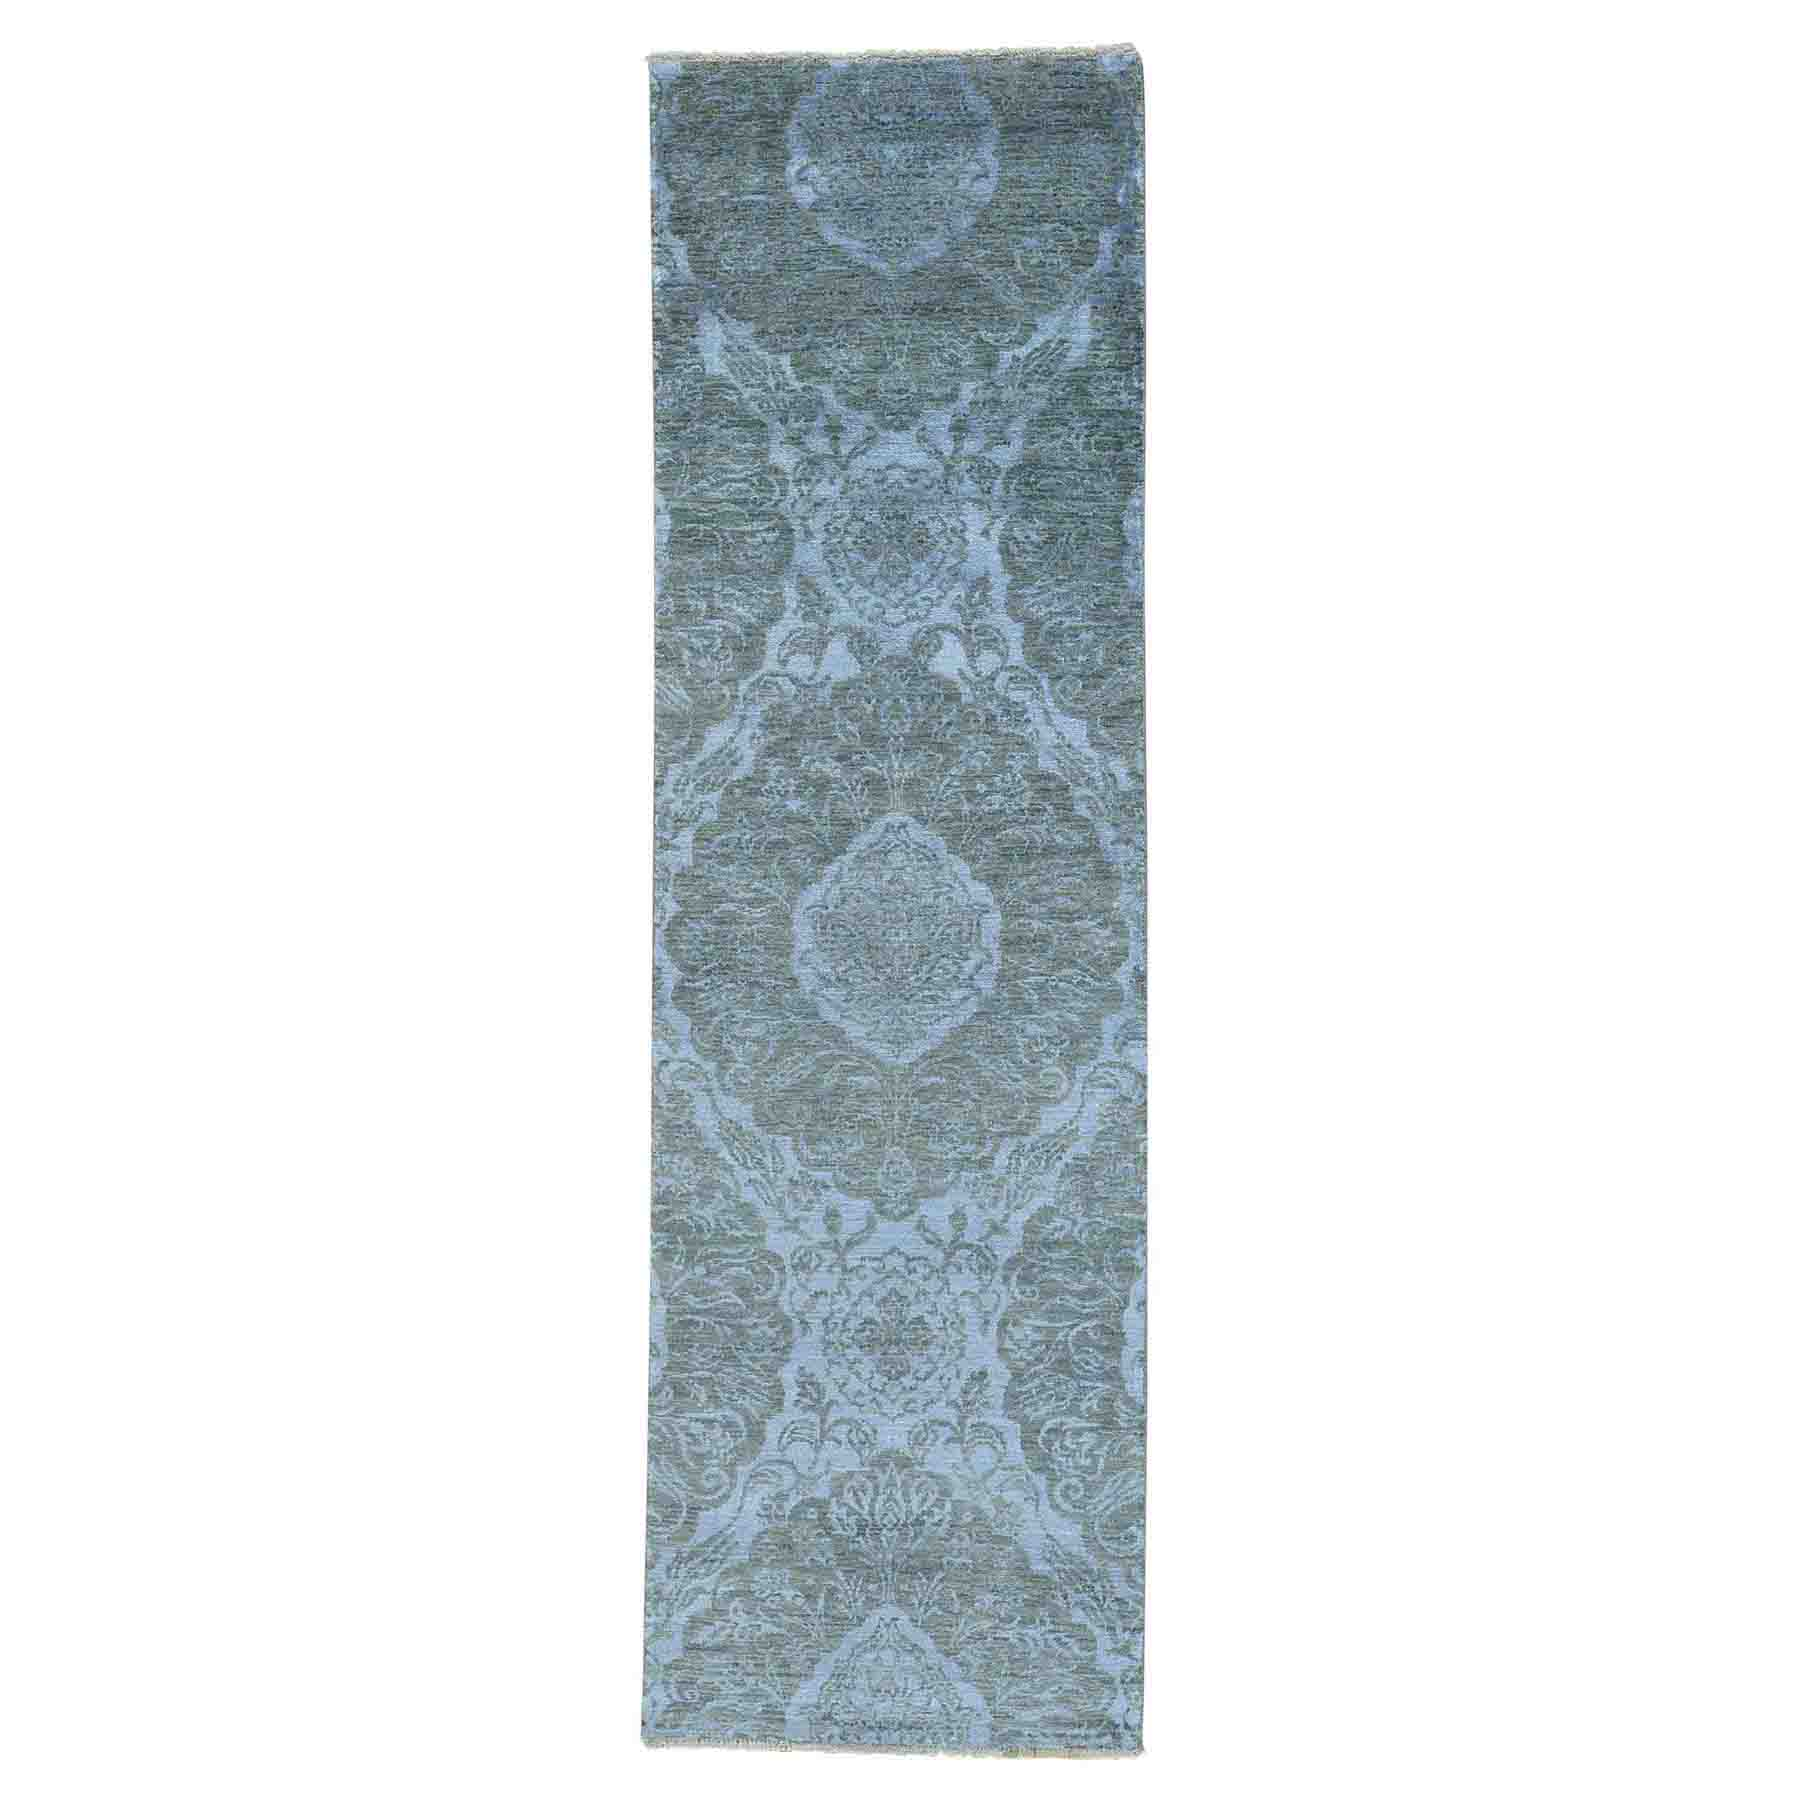 Modern-Contemporary-Hand-Knotted-Rug-137155